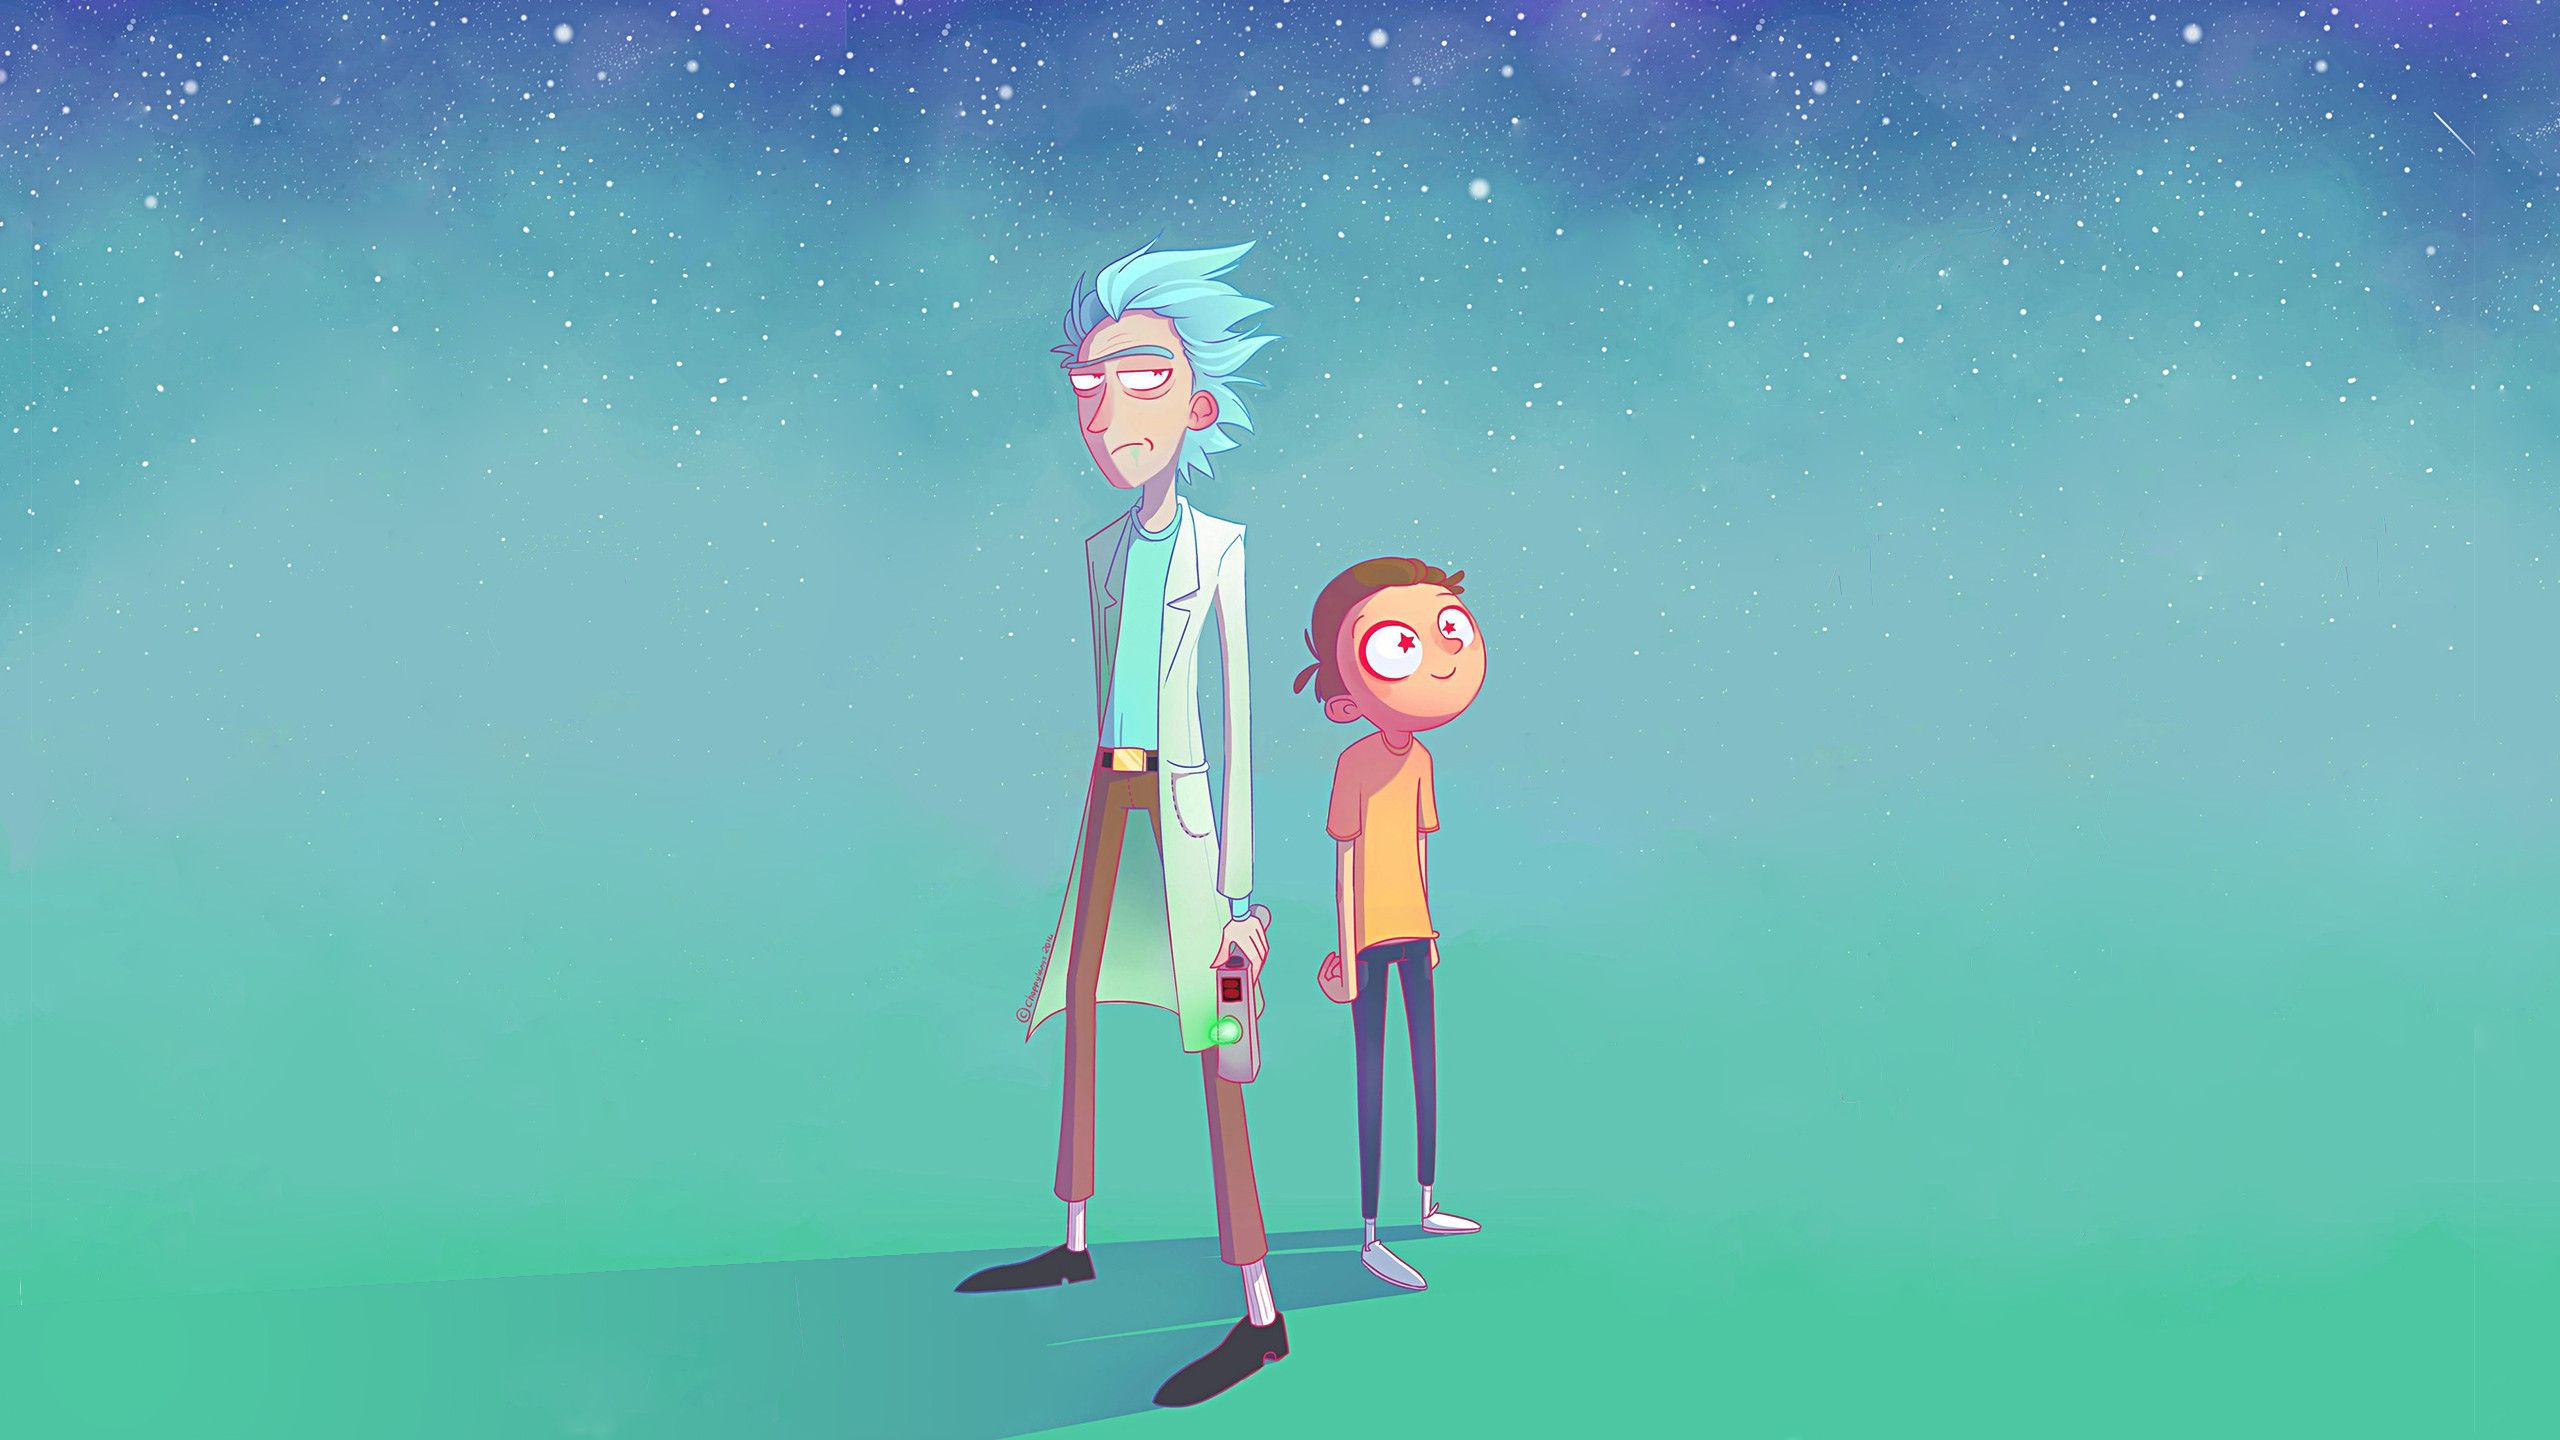 Rick And Morty By Choppywings 2560x1440 Wallpaper Cartoon